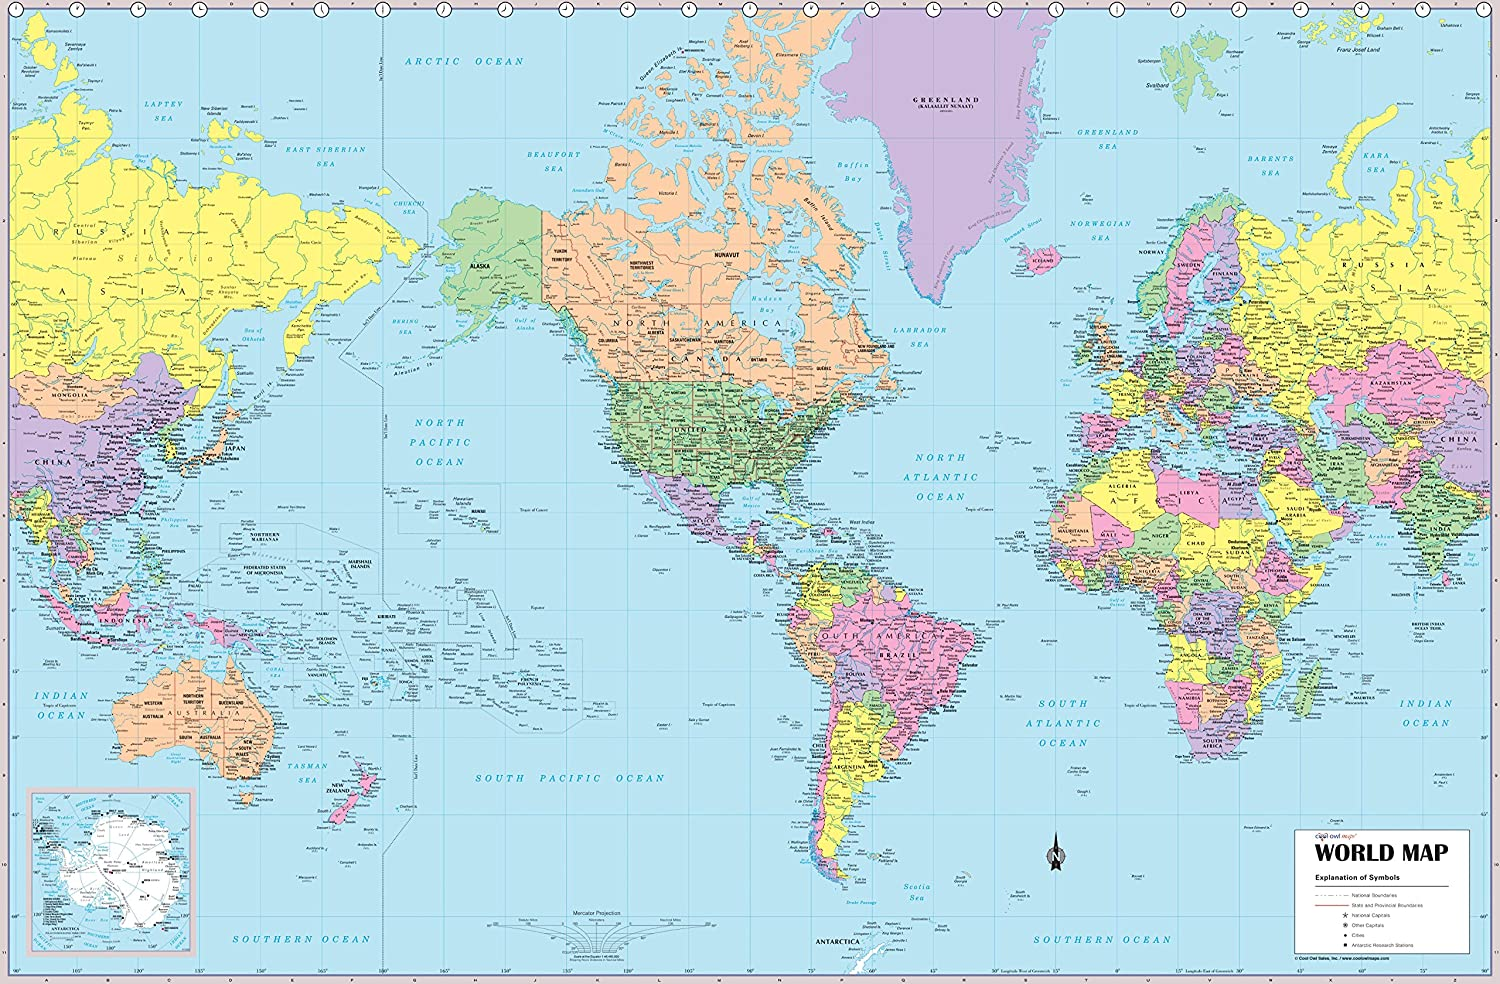 Amazon.com : CoolOwlMaps 2017 World Wall Map, United States ...